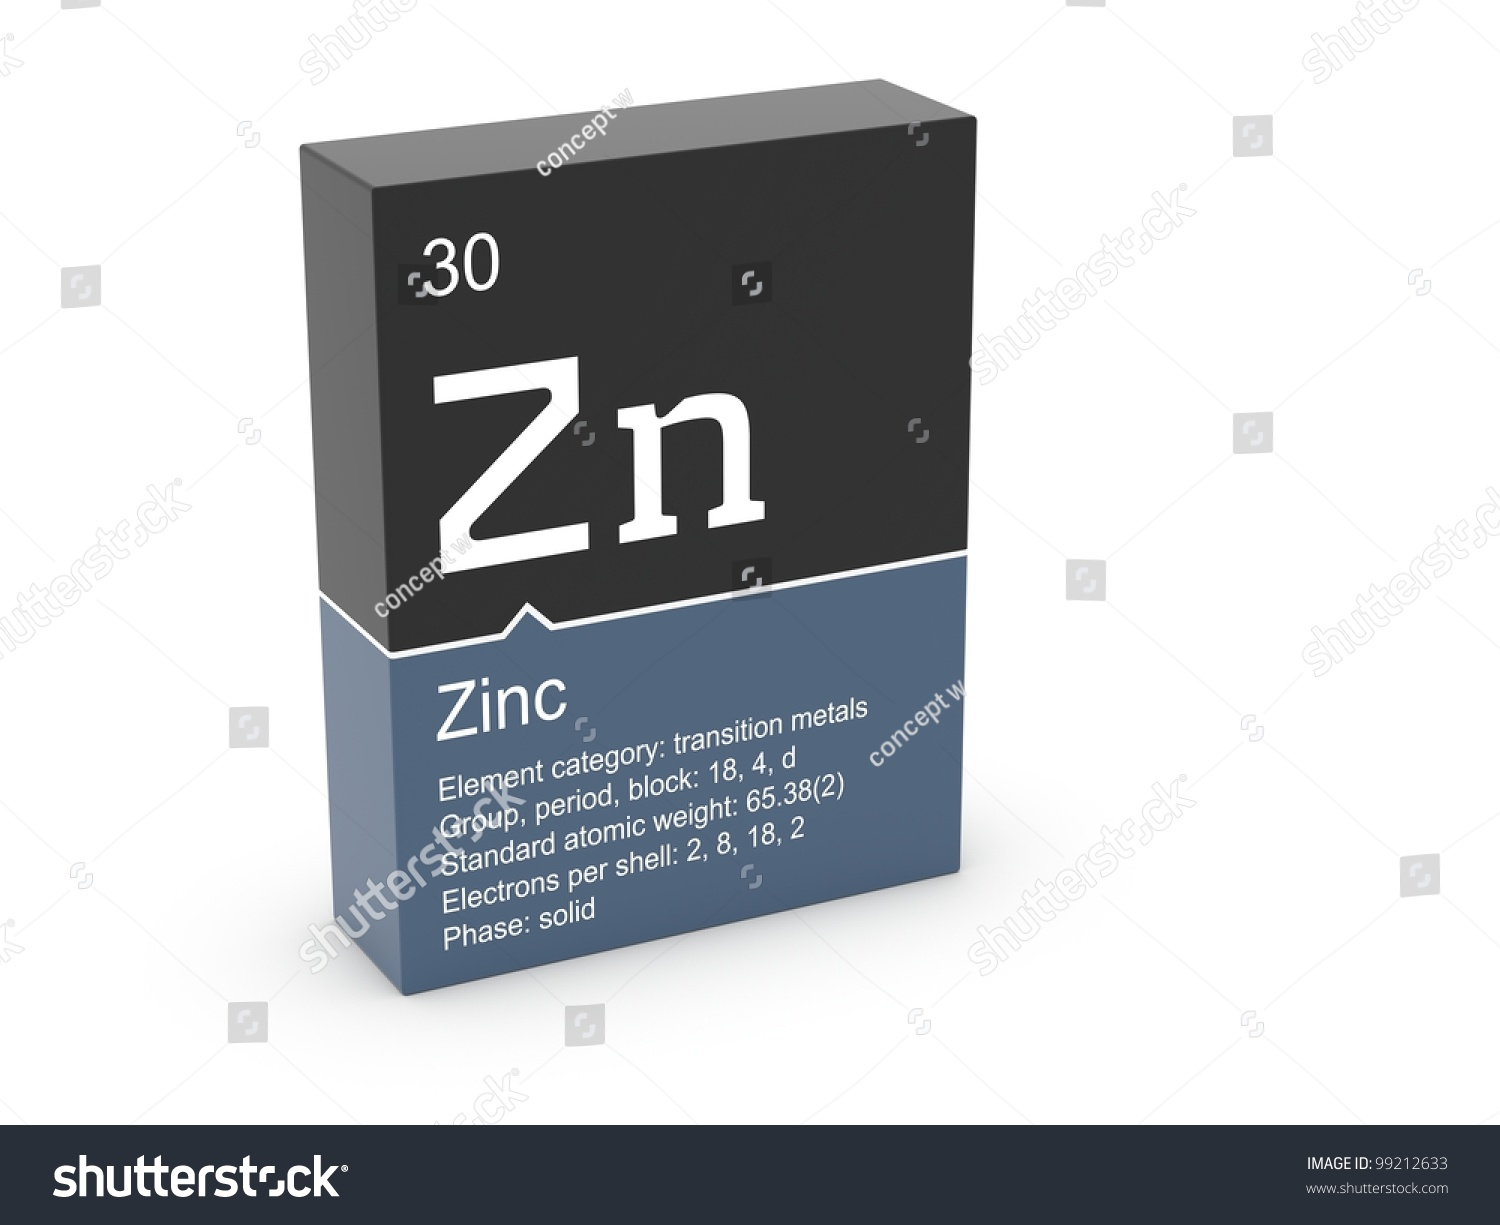 Zinc mendeleevs periodic table stock illustration 99212633 zinc from mendeleevs periodic table gamestrikefo Image collections